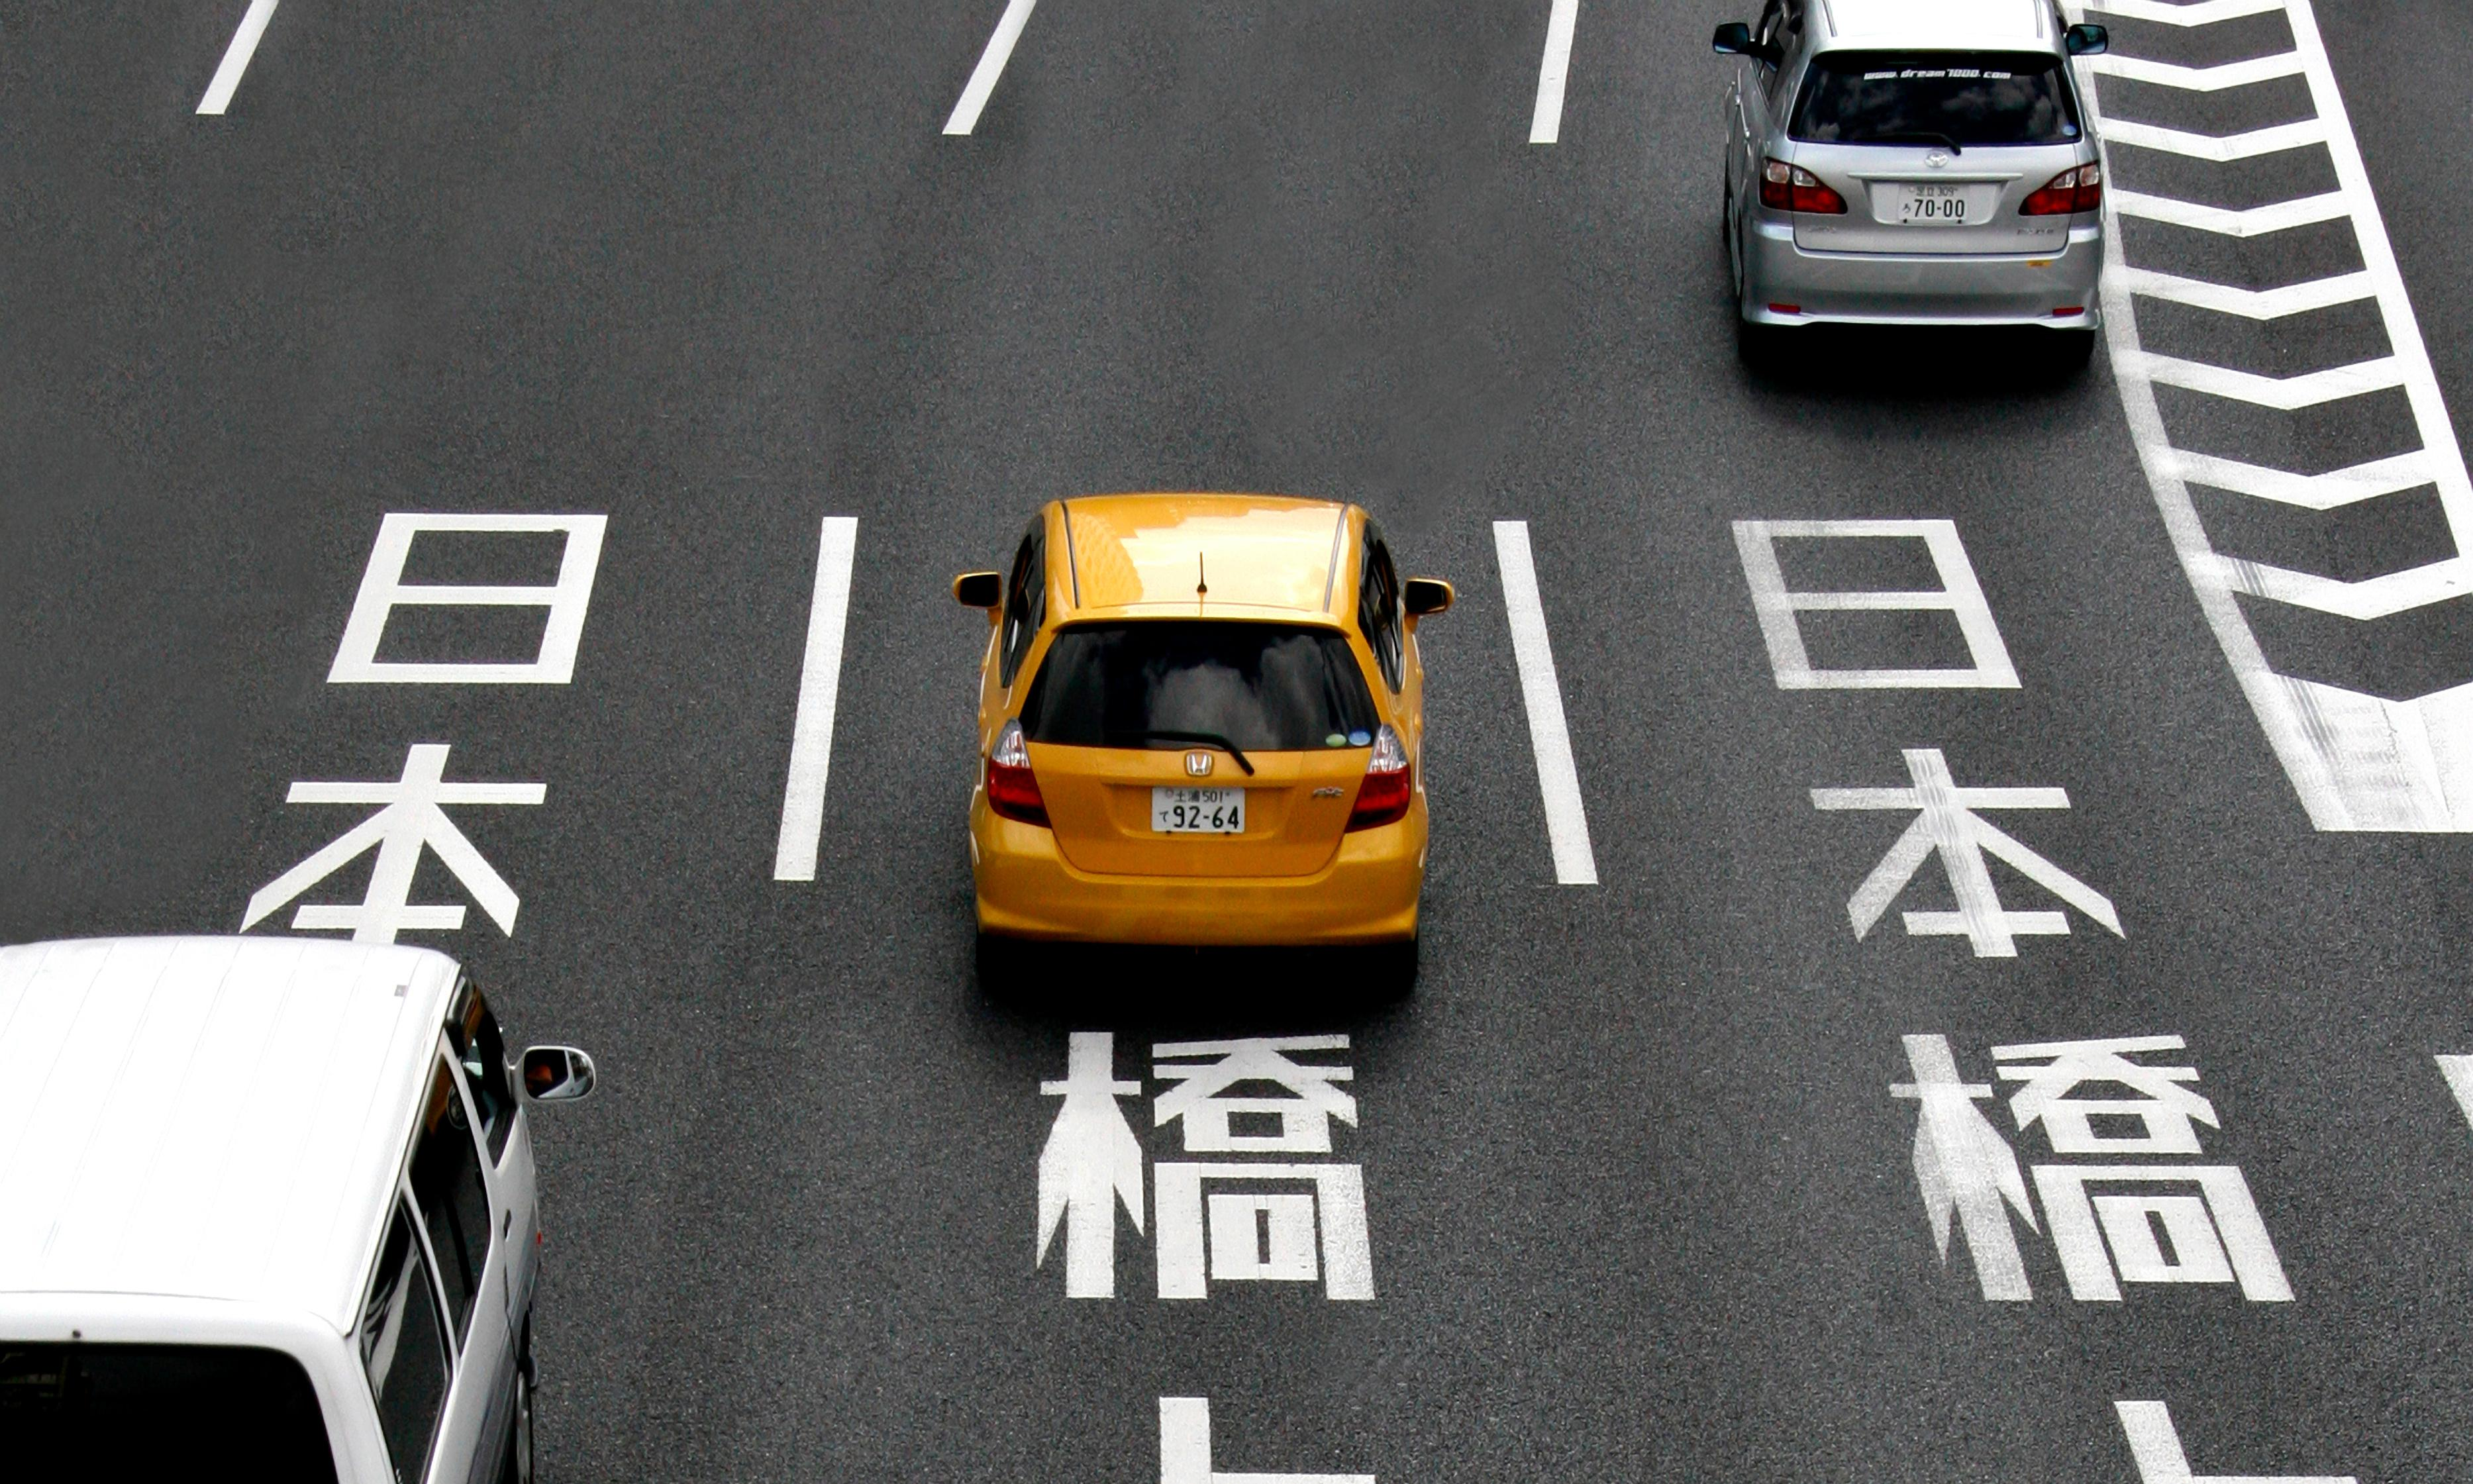 Asleep at the wheel: Japanese rental cars used for anything but driving